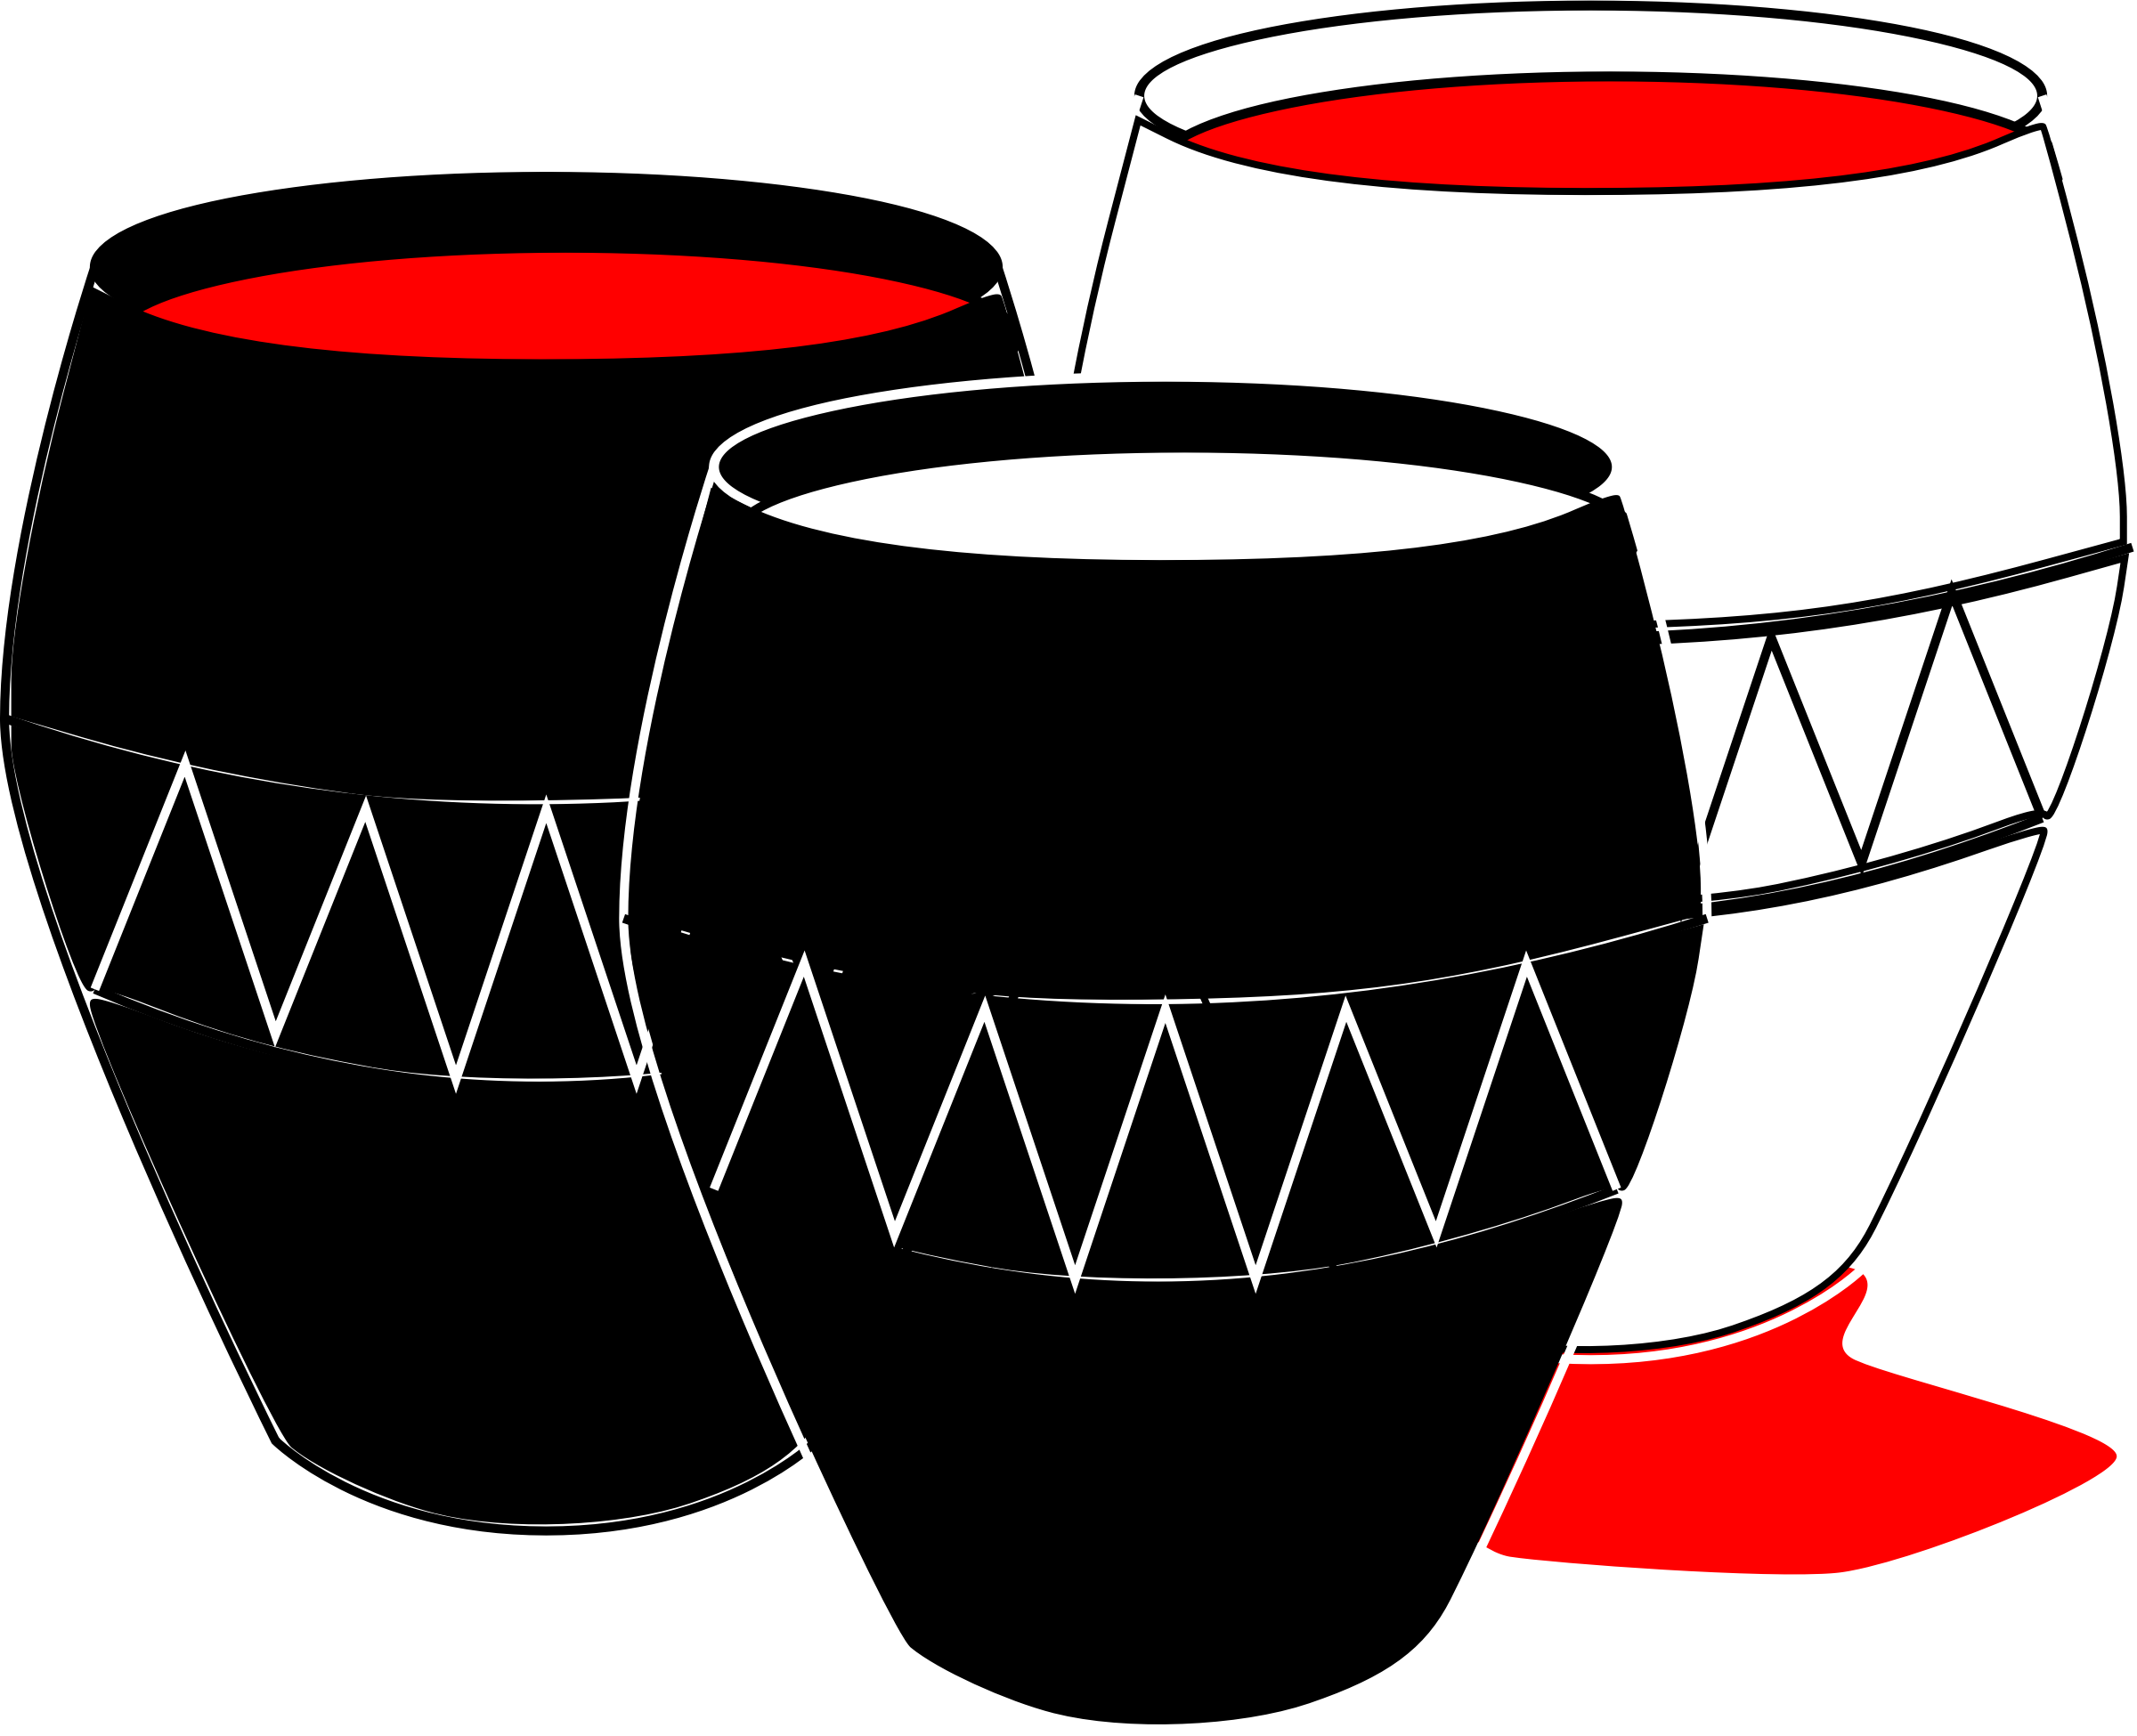 Water and wine at. Drums clipart marriage